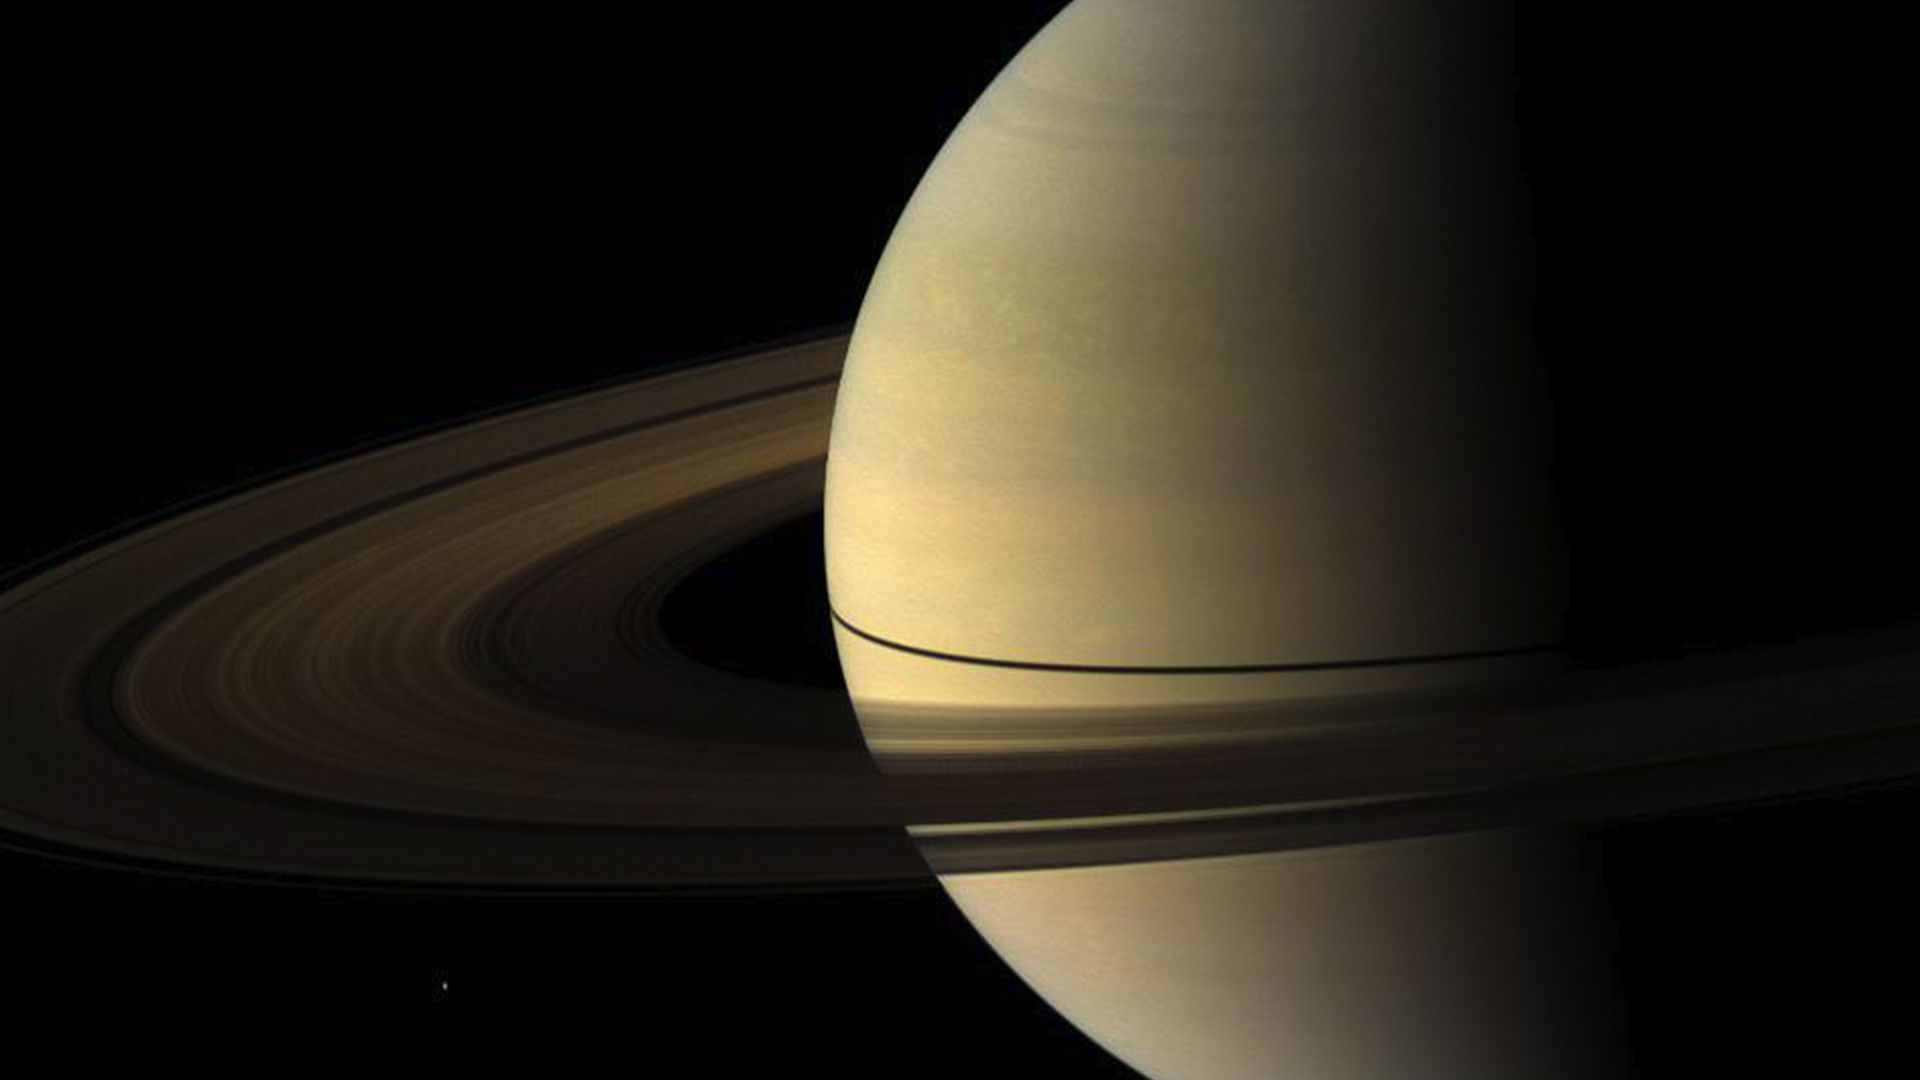 A 2009 image from Cassini of Saturn's rings casting a narrow shadow on the planet.